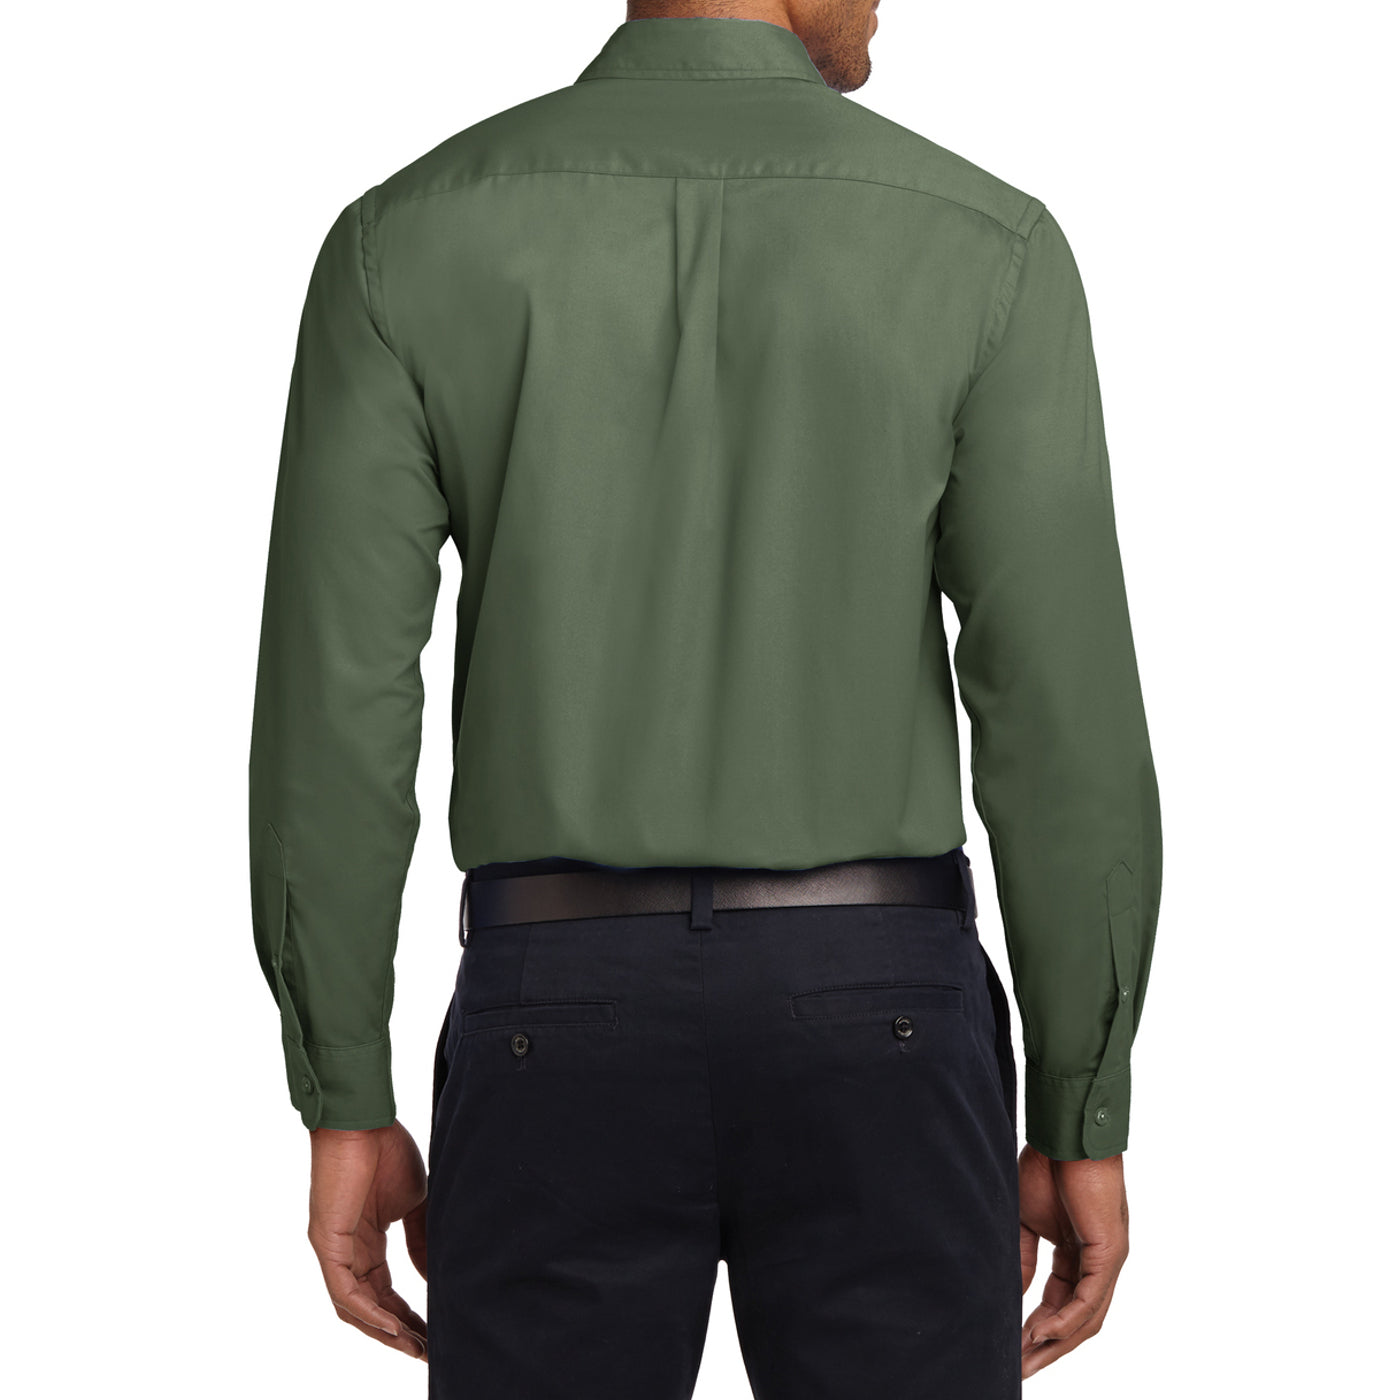 Men's Long Sleeve Easy Care Shirt - Clover Green - Back